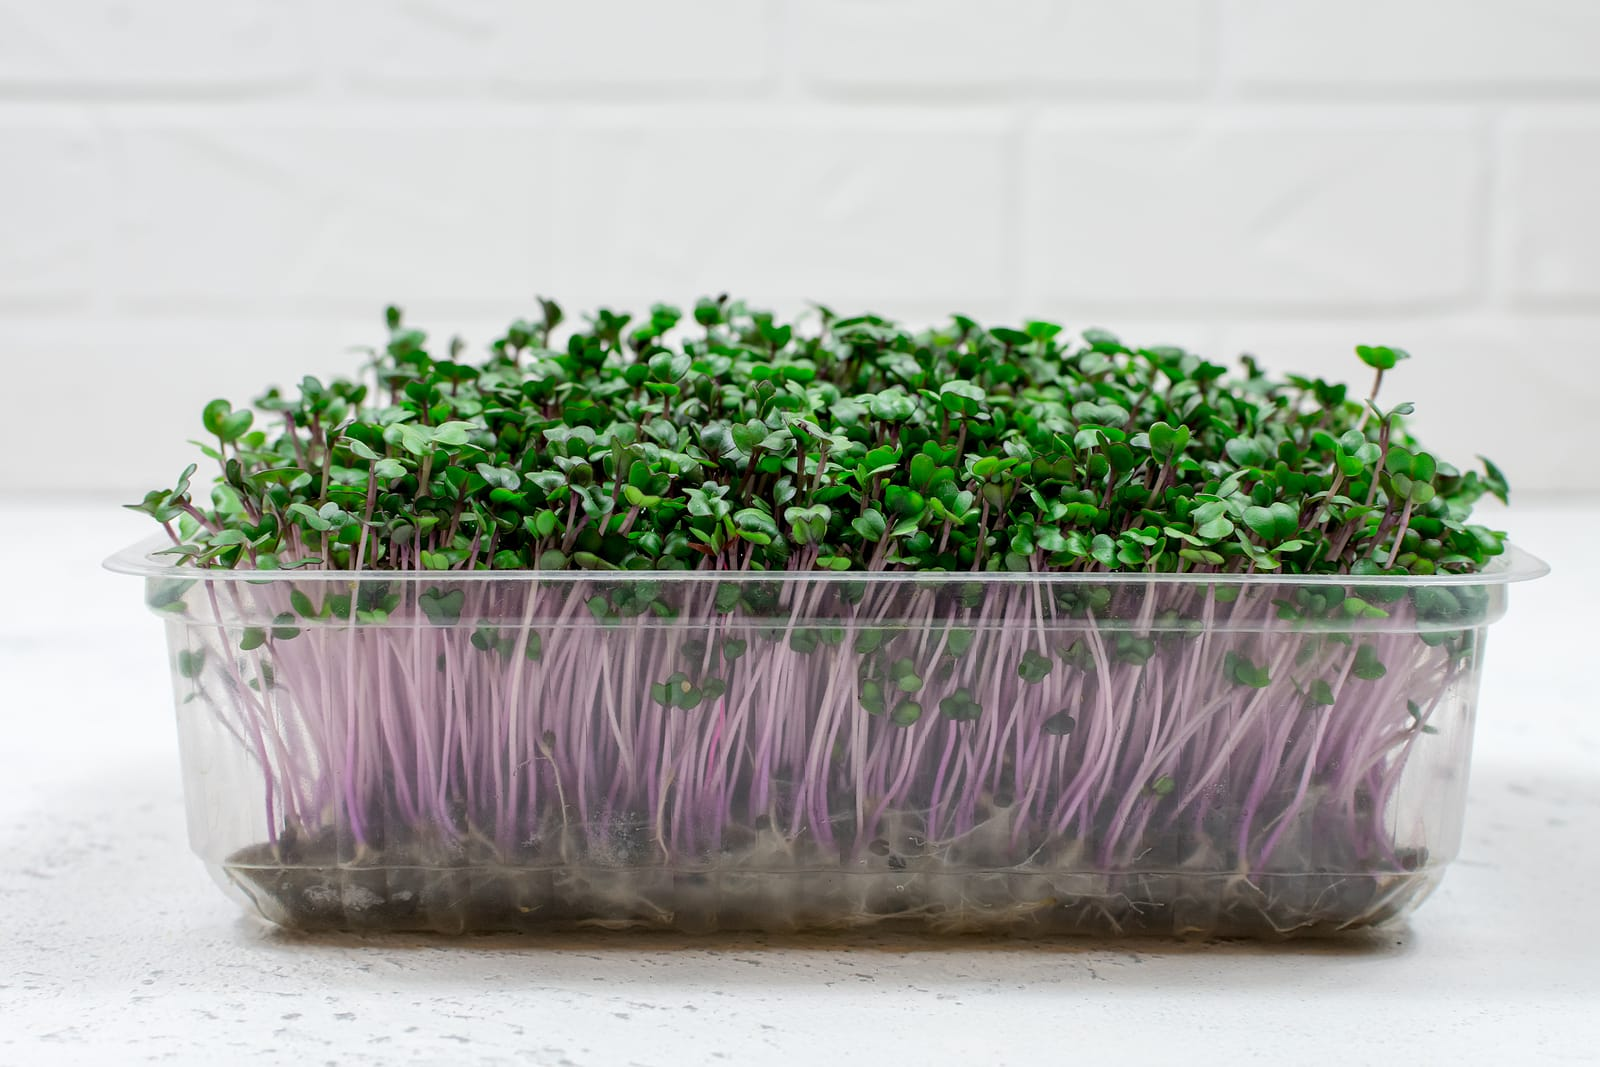 Fresh organic sprouts in a plastic container